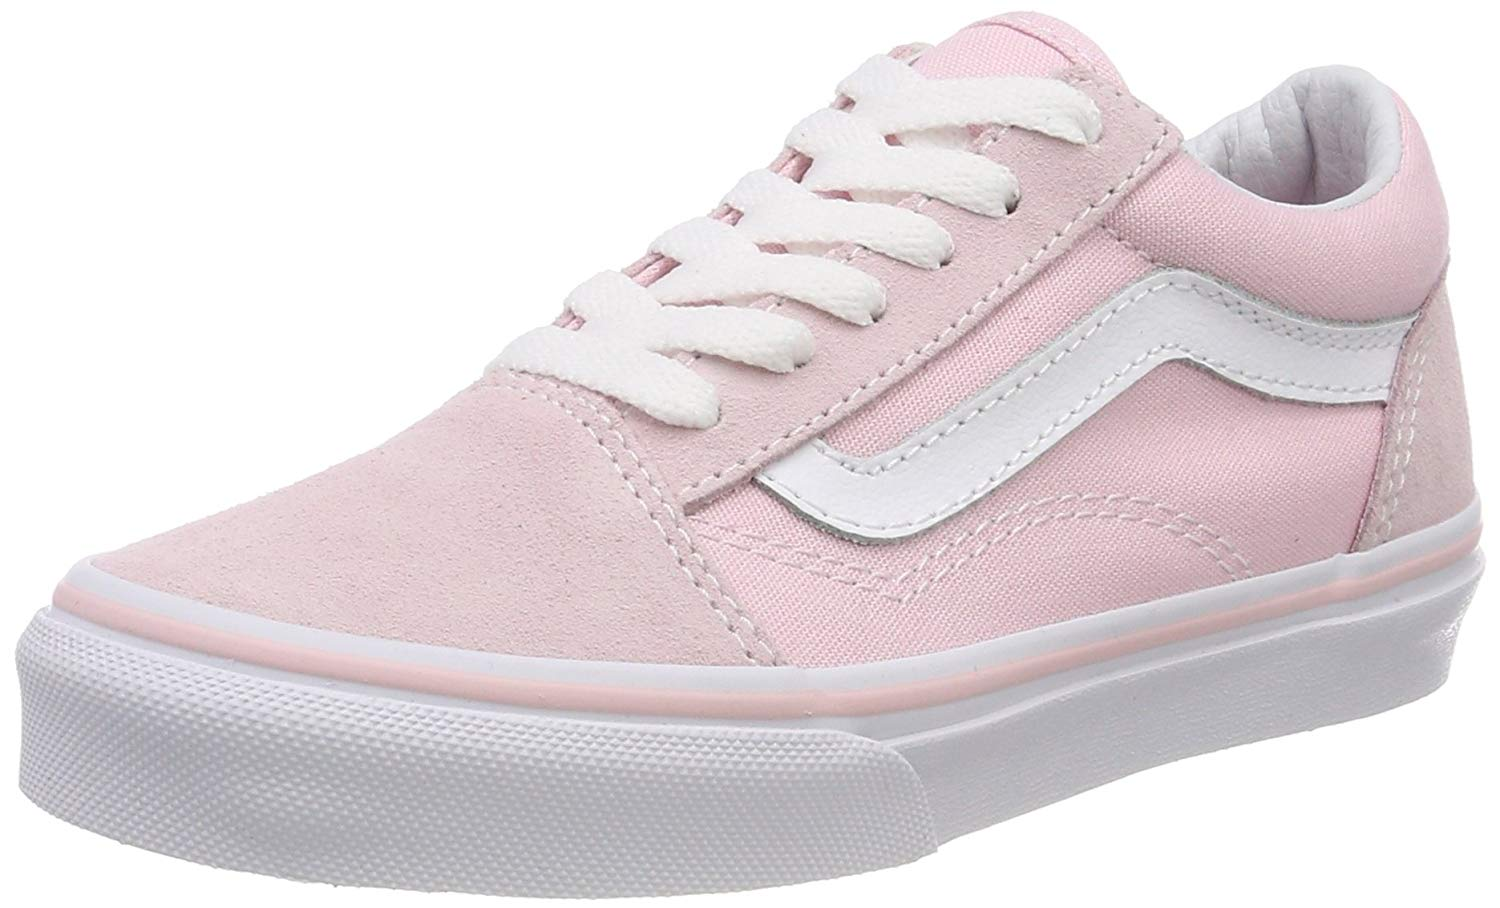 Get - pink and white vans kids - OFF 66